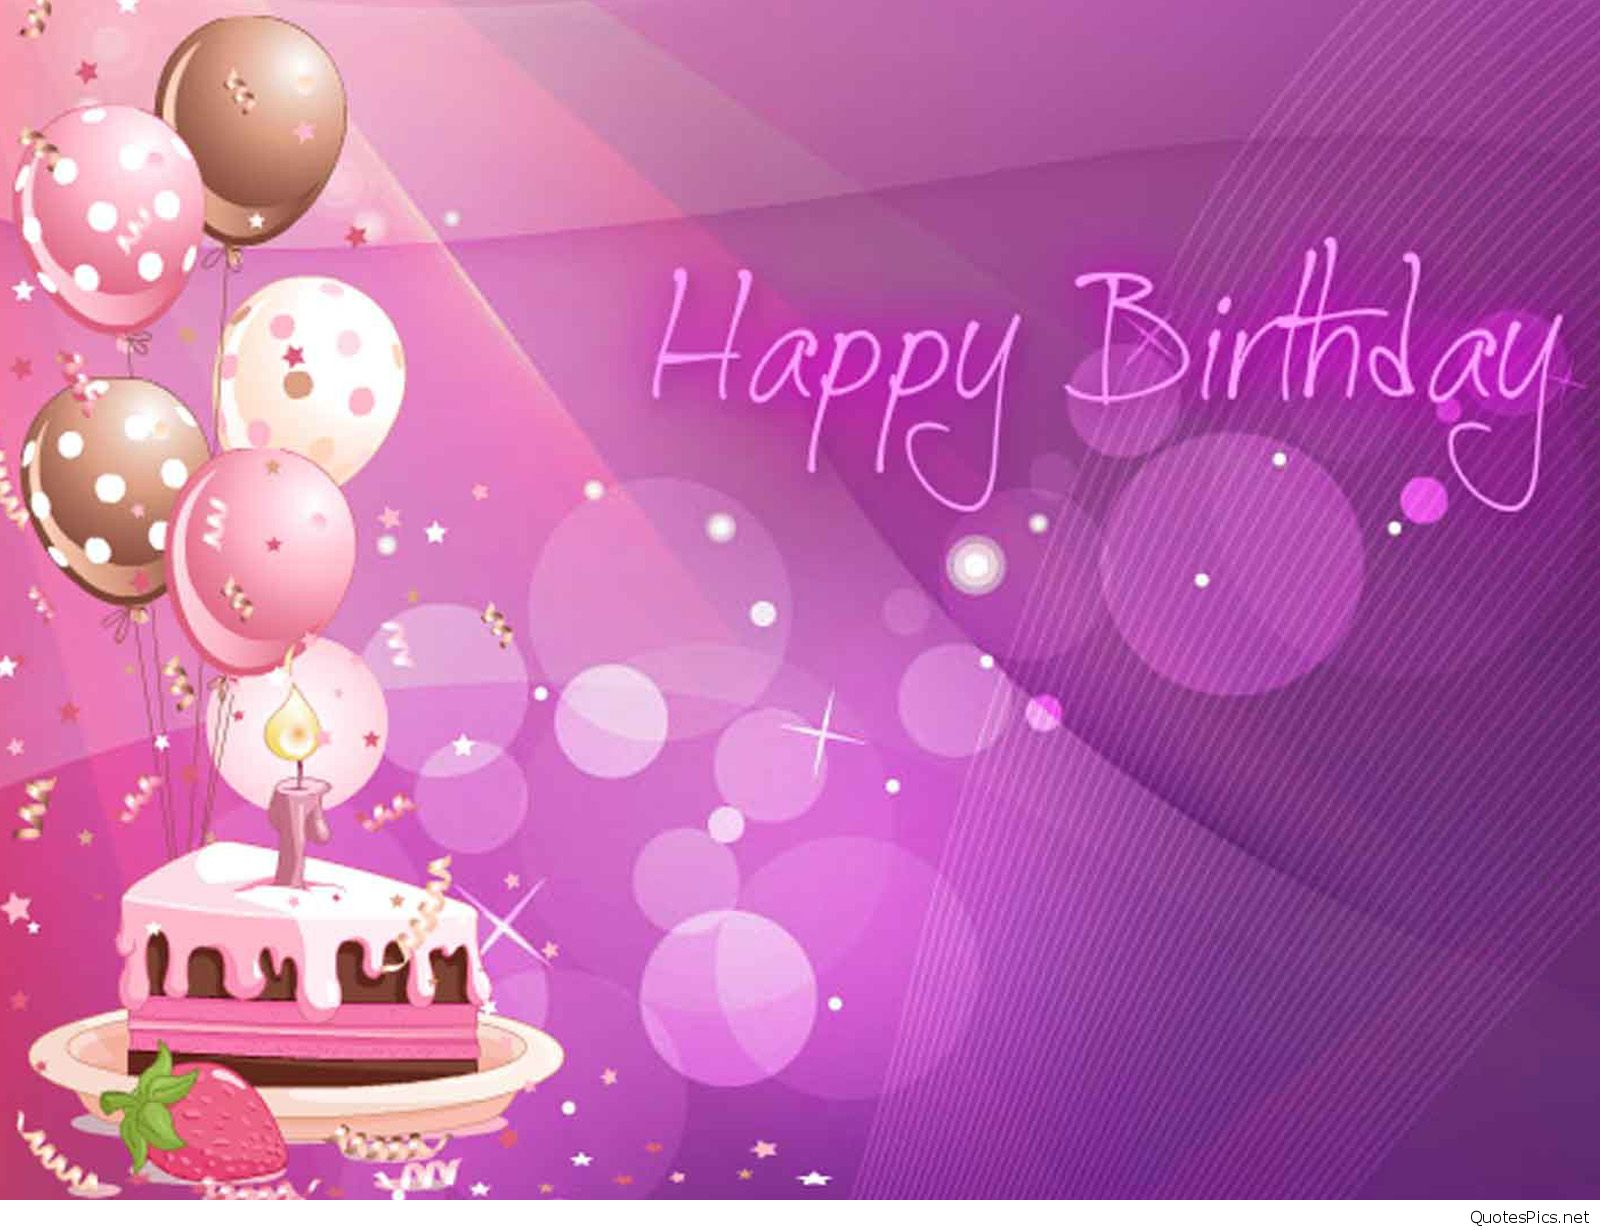 birthday wishes pics hd ; Happy-birthday-wishes-hd-wallpapers